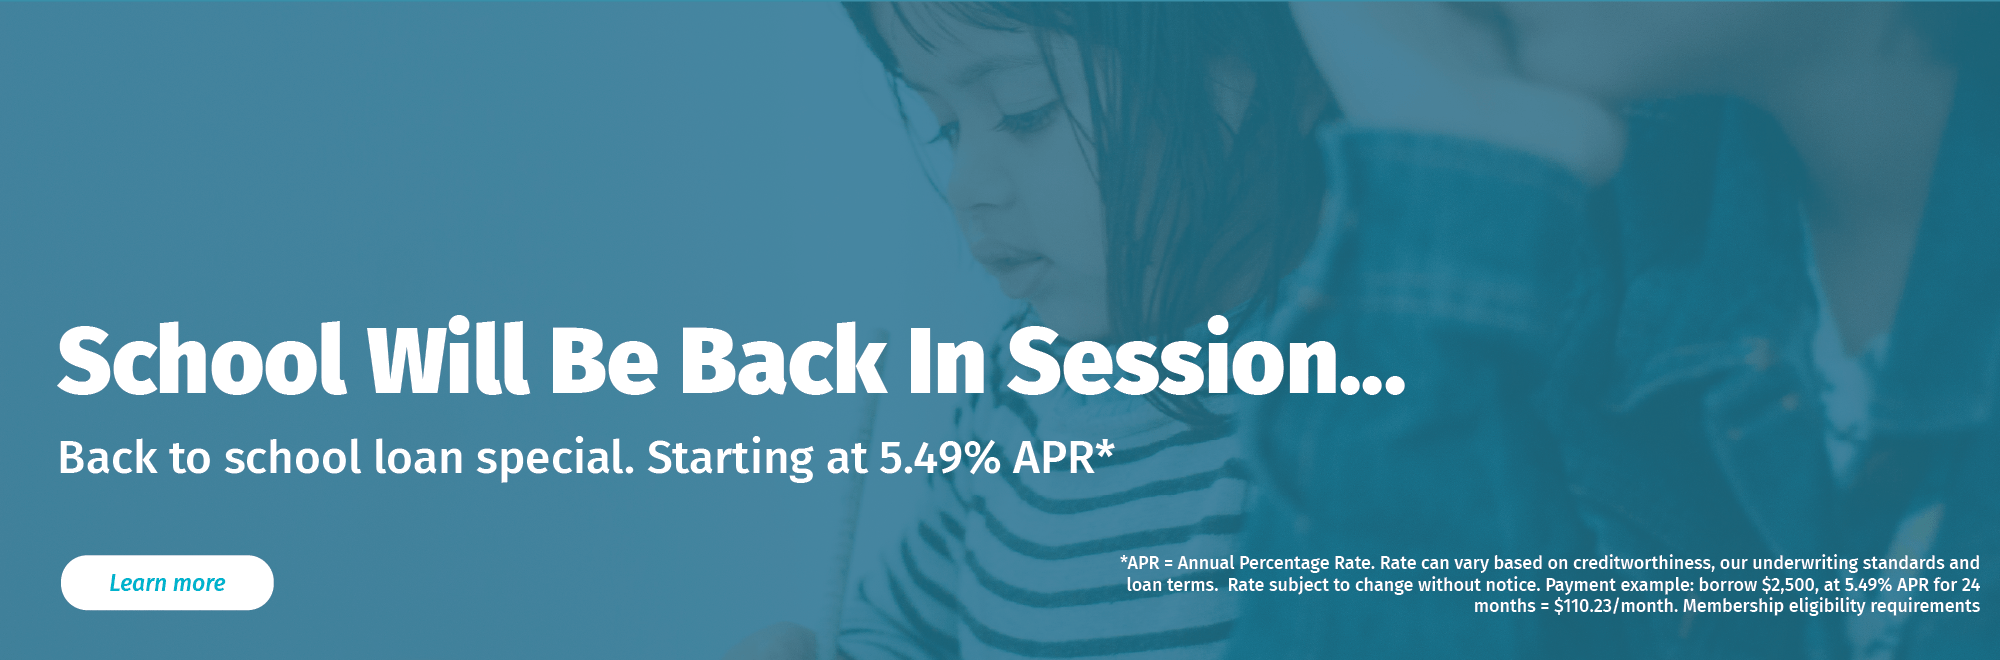 School will be back in session. Start the year off right with a back to school loan special.